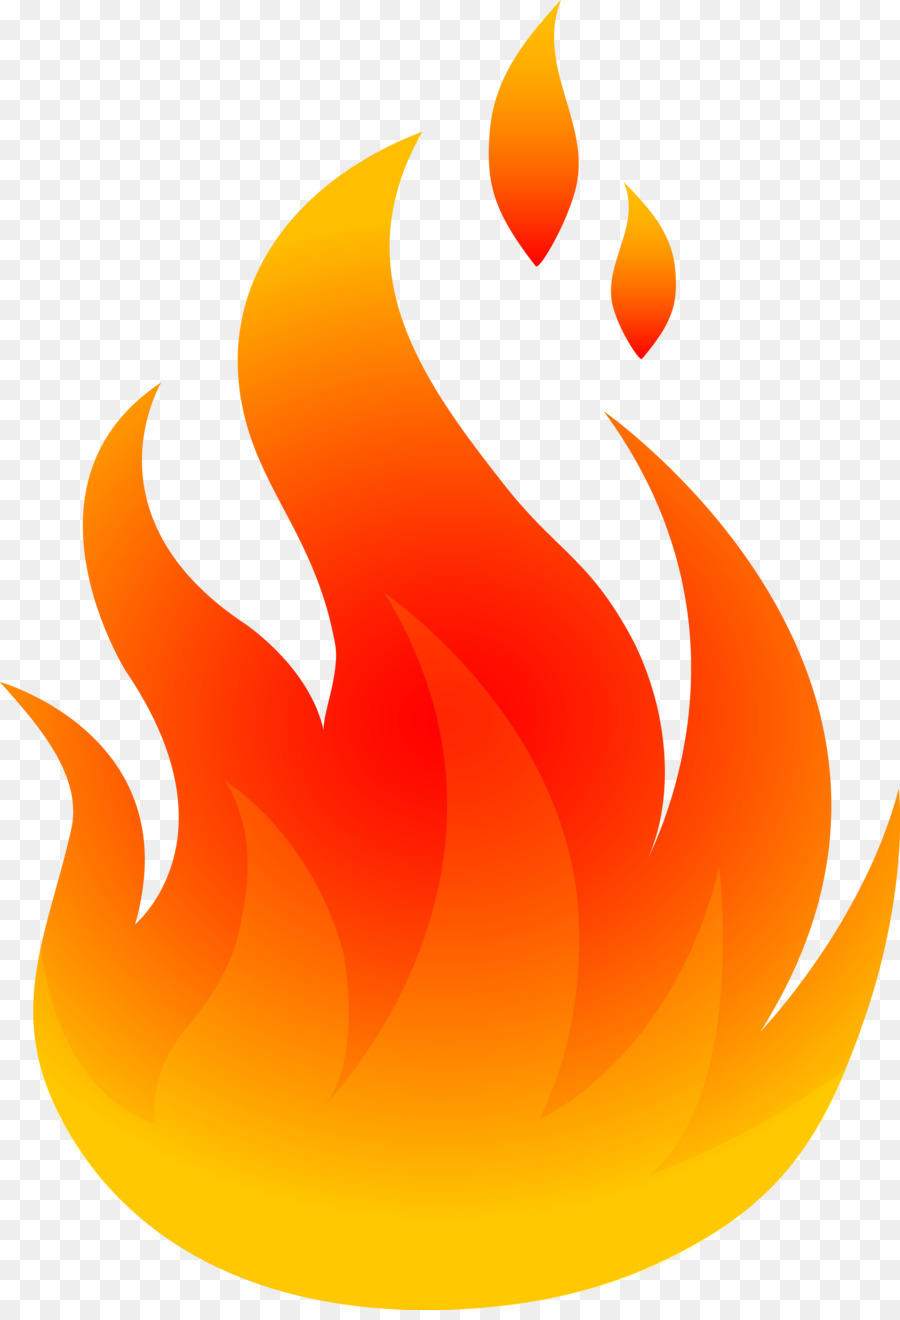 fire flame clip art realistic flame cliparts png download 4830 rh kisspng com free flame clipart borders free candle flame clipart